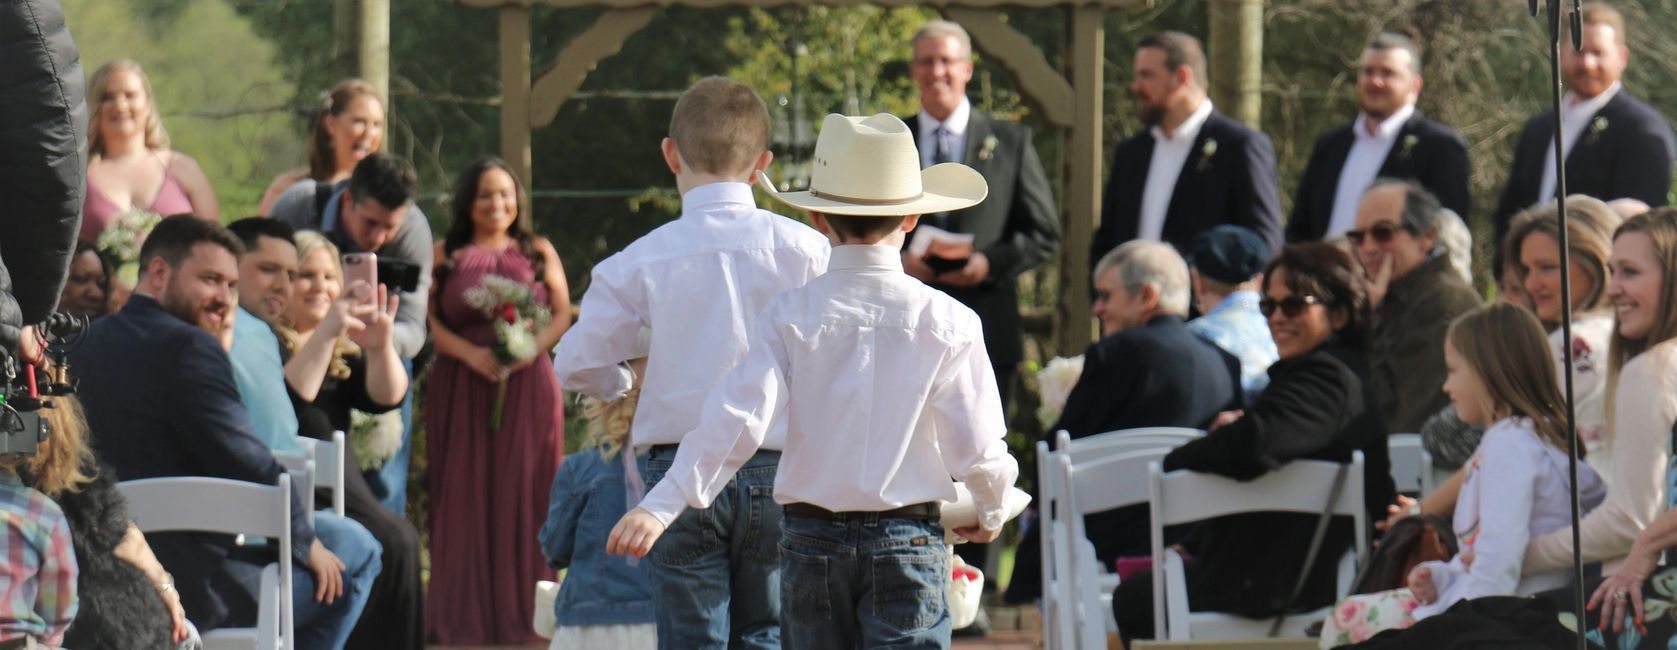 Cowboy flower girl and ring bearer wedding ceremony.